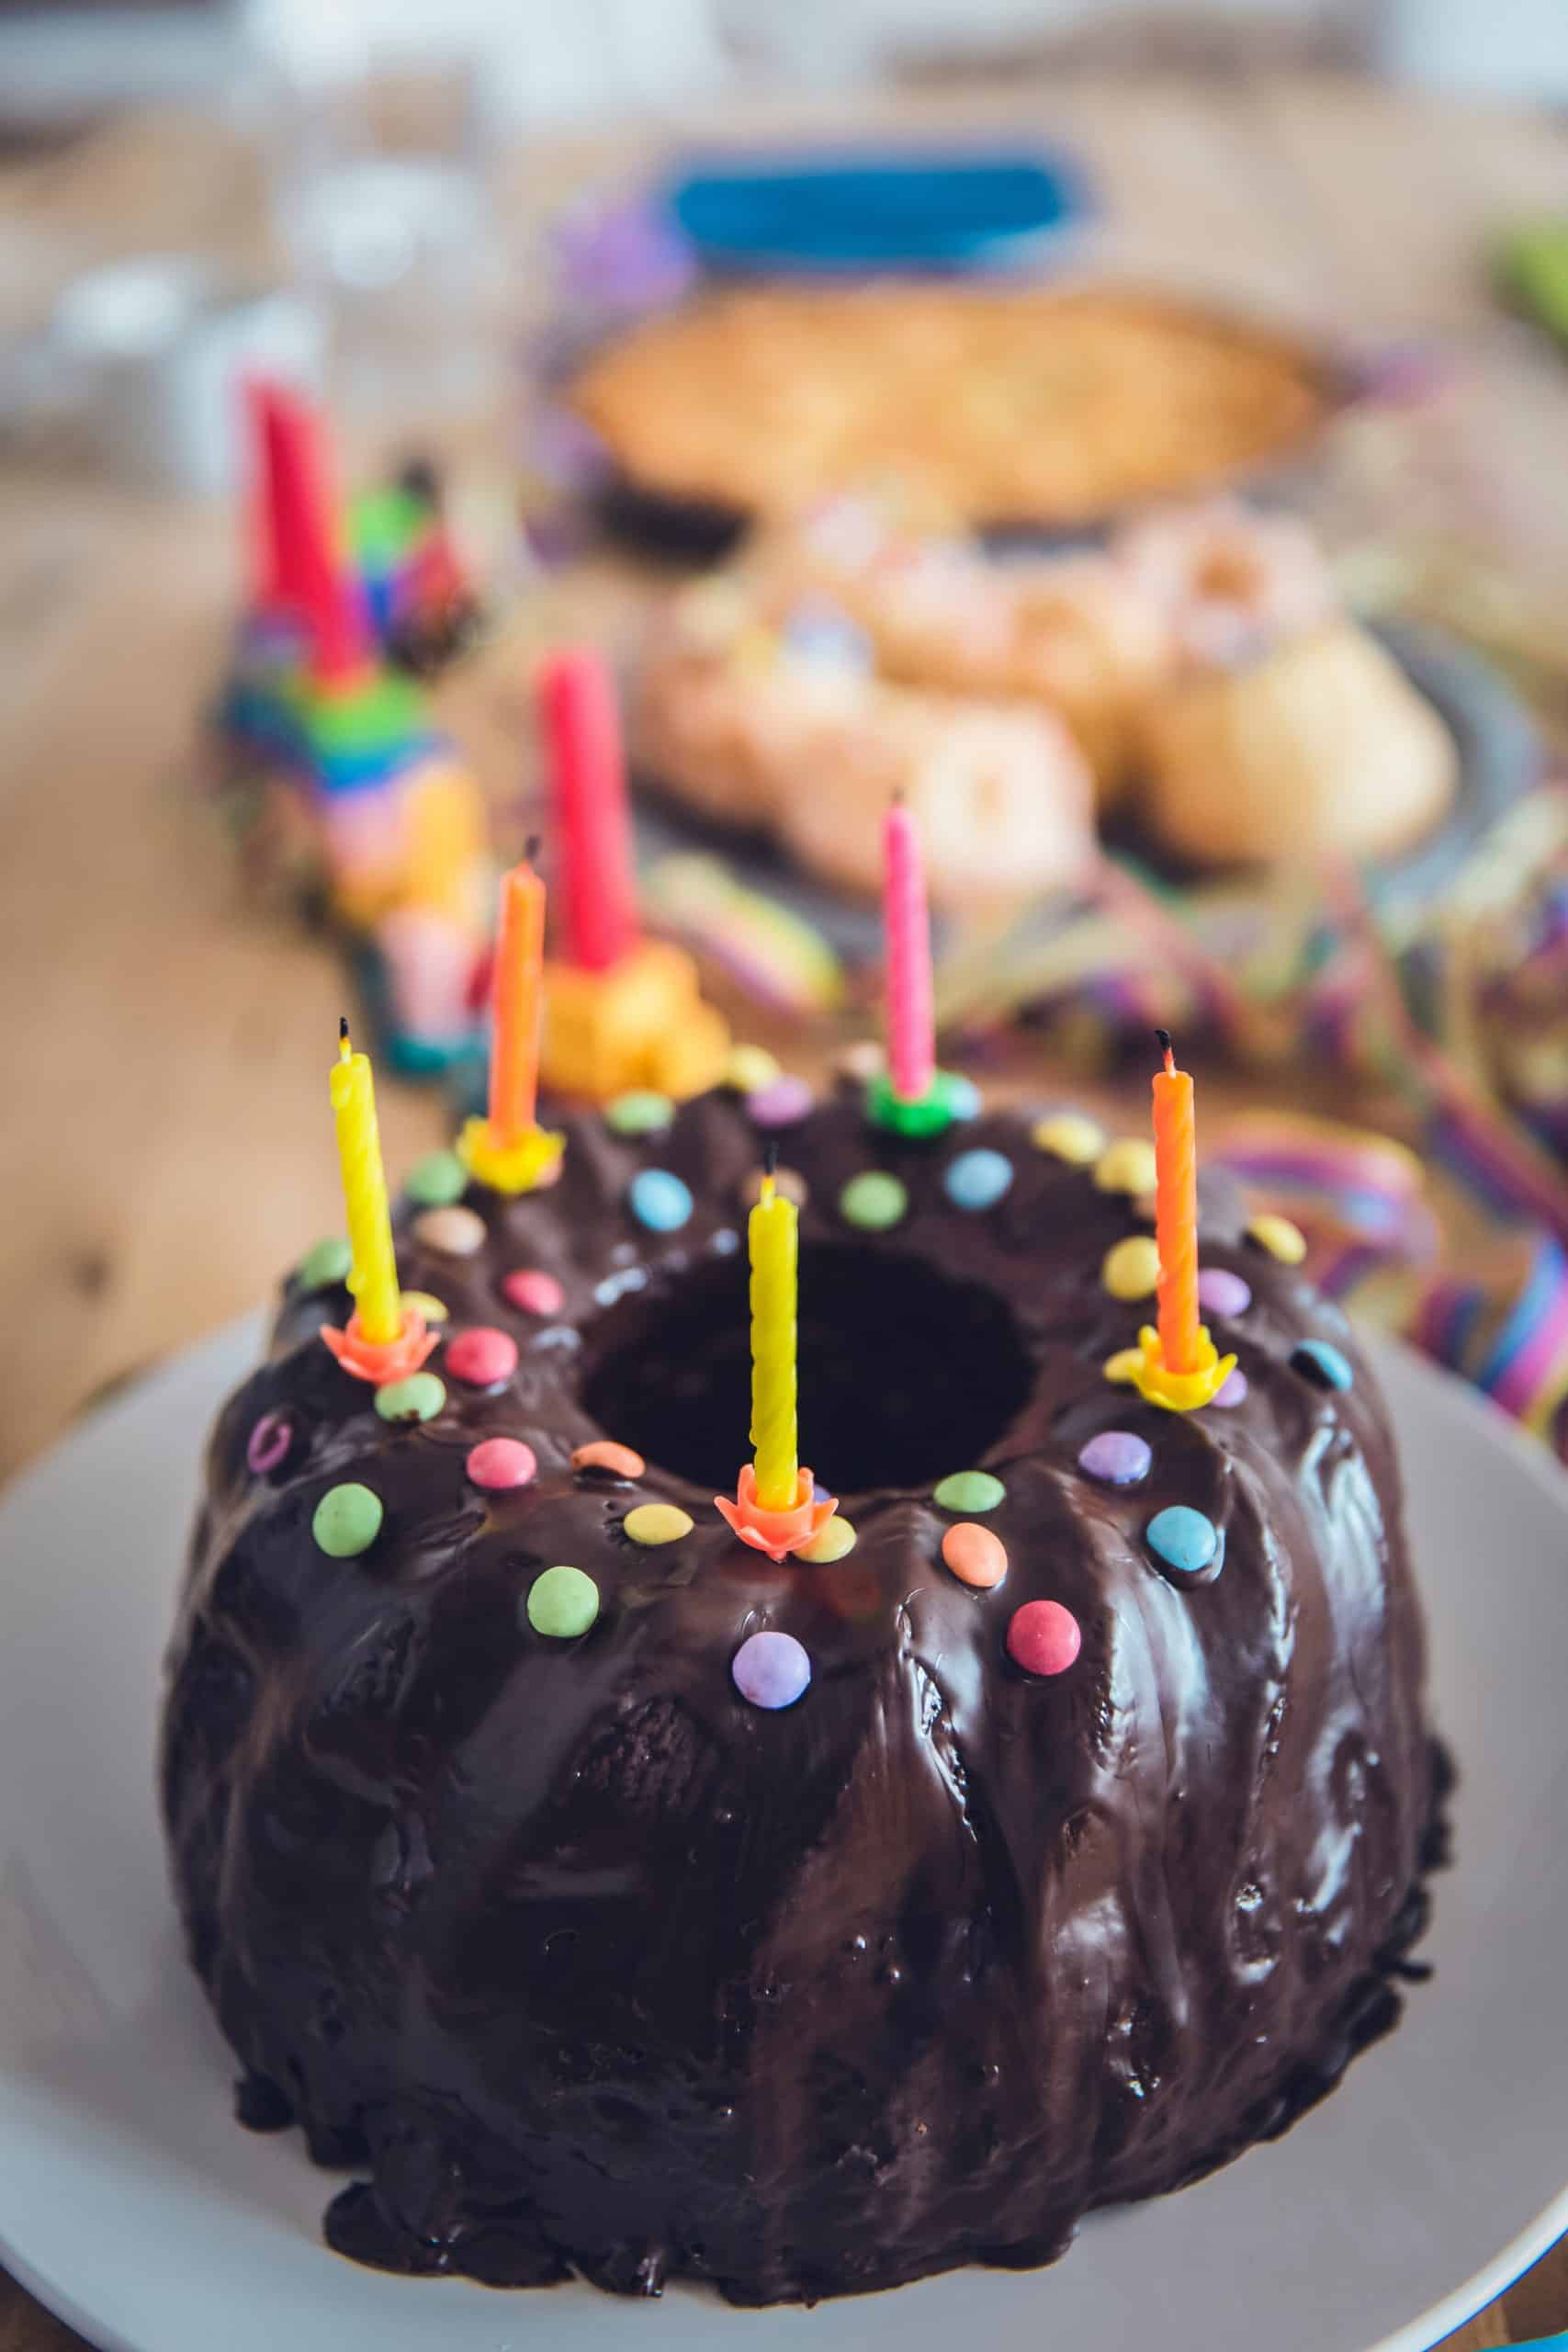 Is it permissible to attend birthday parties?